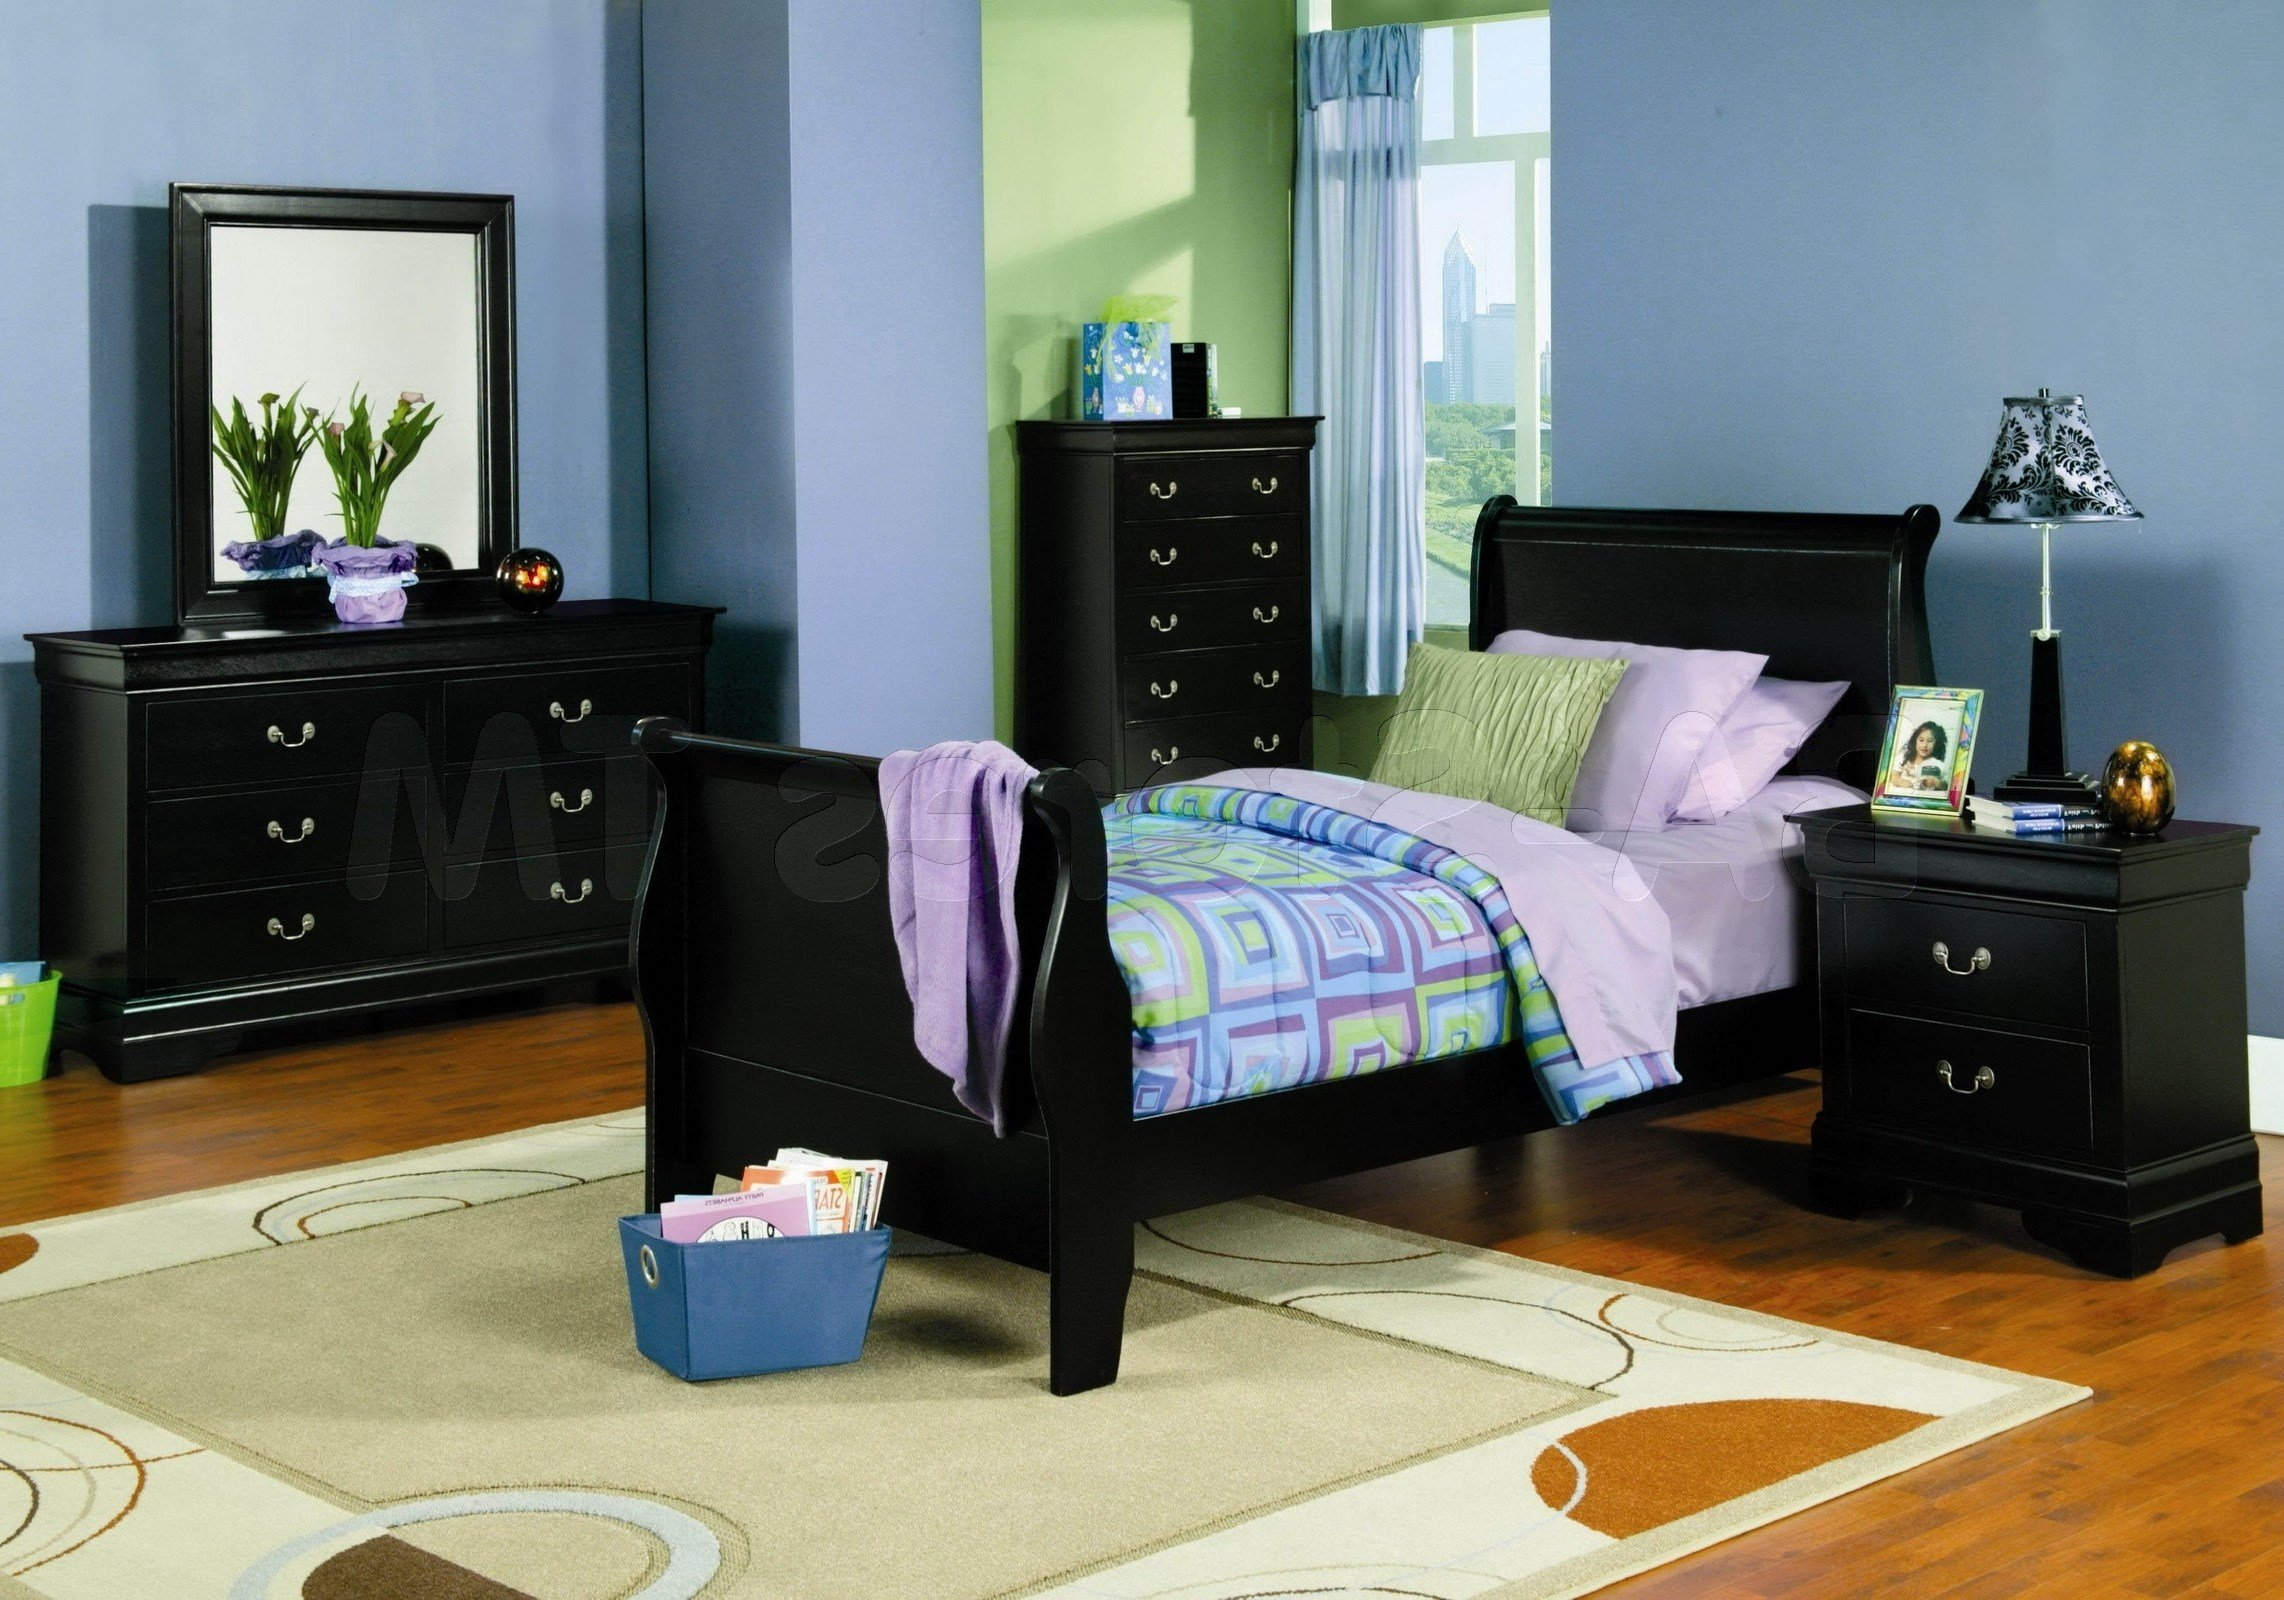 Best Bedroom Loft Beds For Kids Walmart Carpet Pillows Floor Lamps Lights And Lamps With Pictures